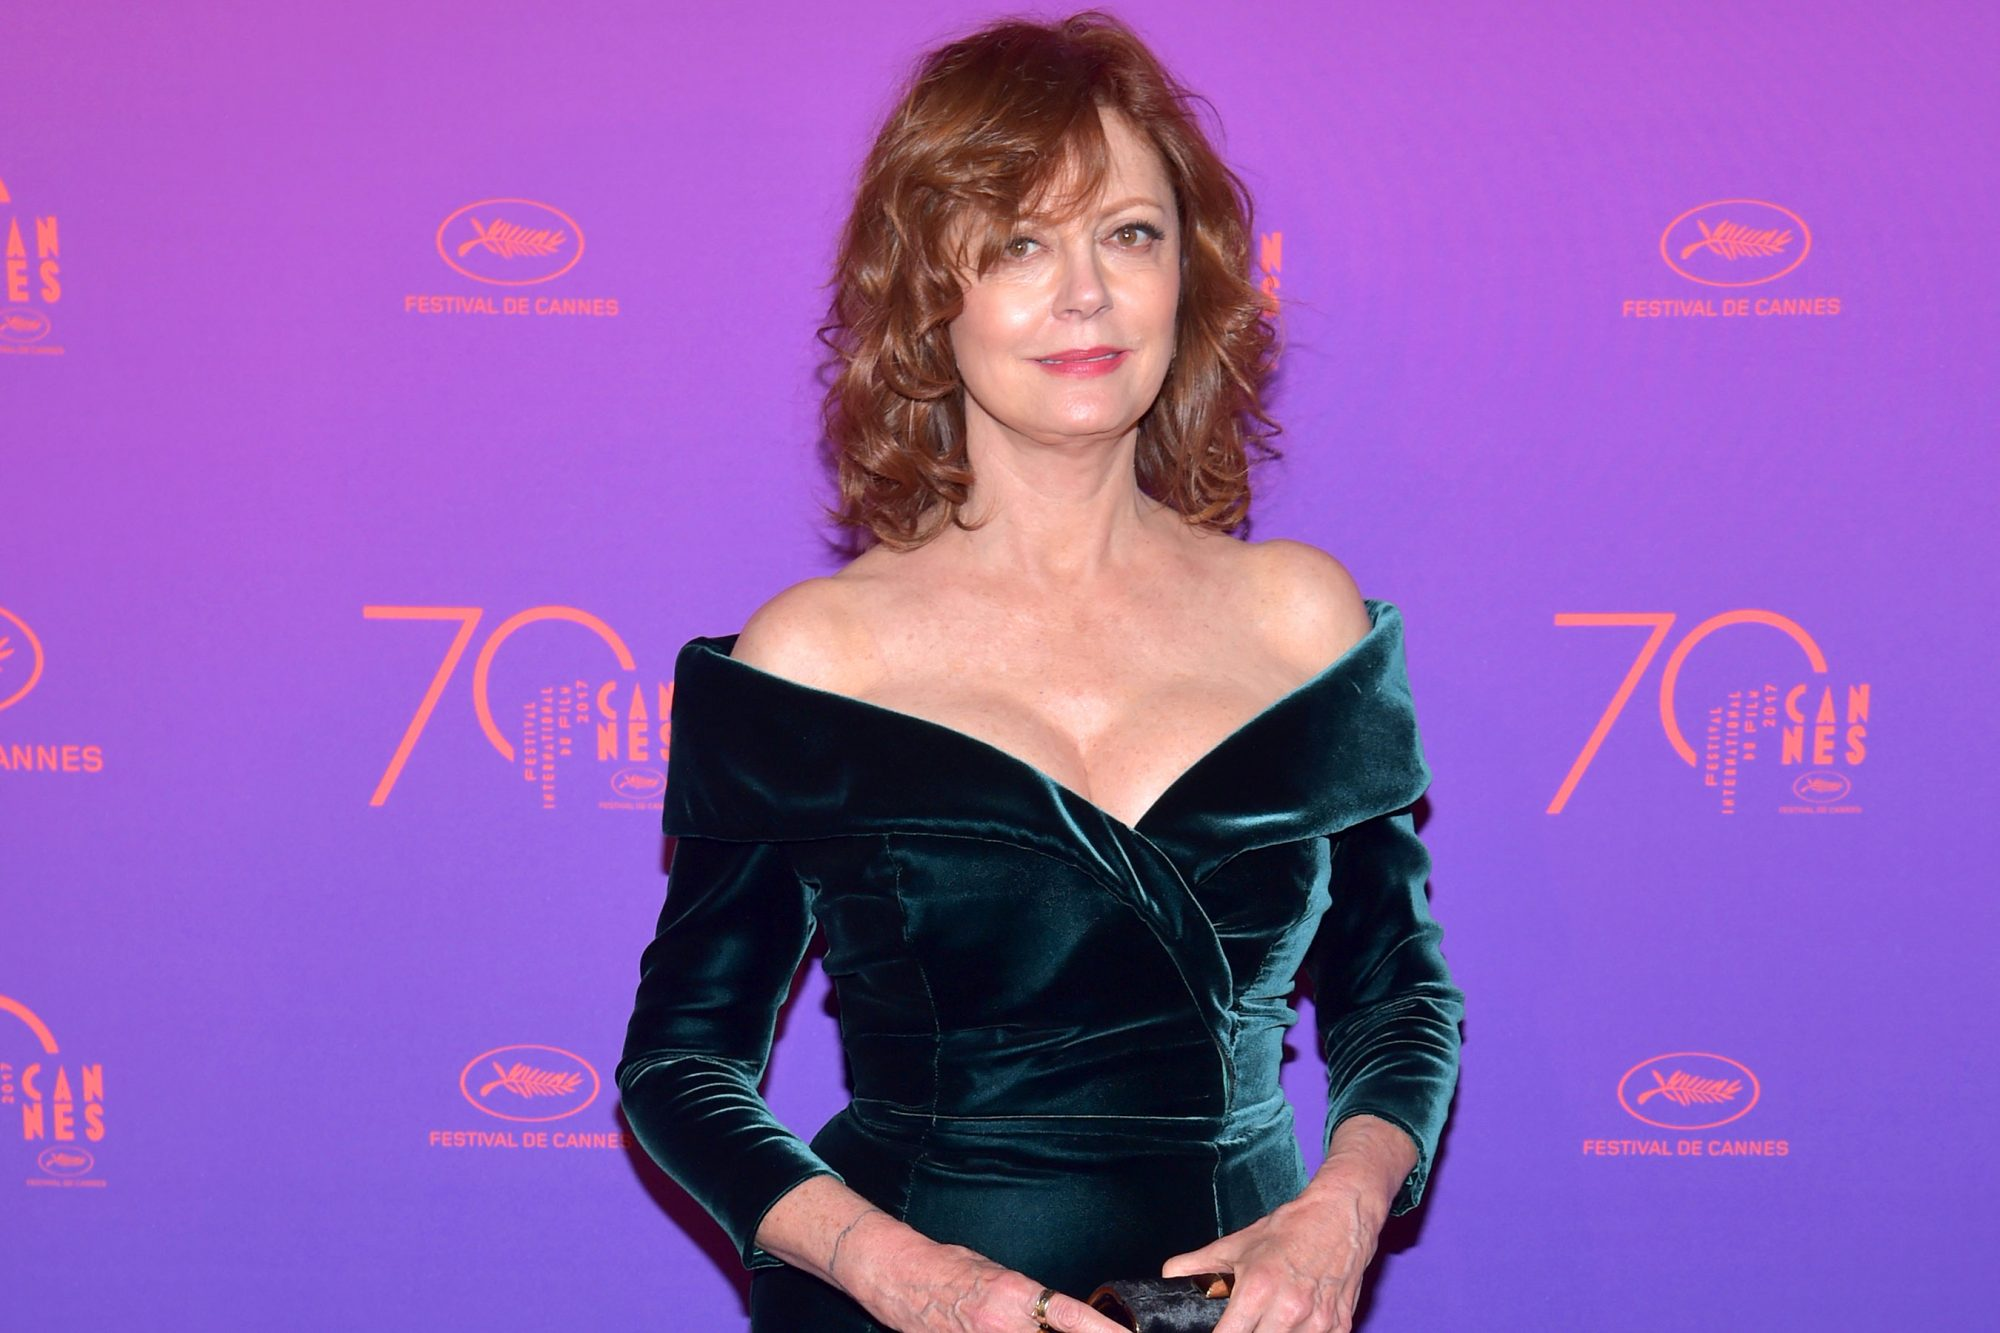 Opening Gala Dinner Arrivals - The 70th Annual Cannes Film Festival